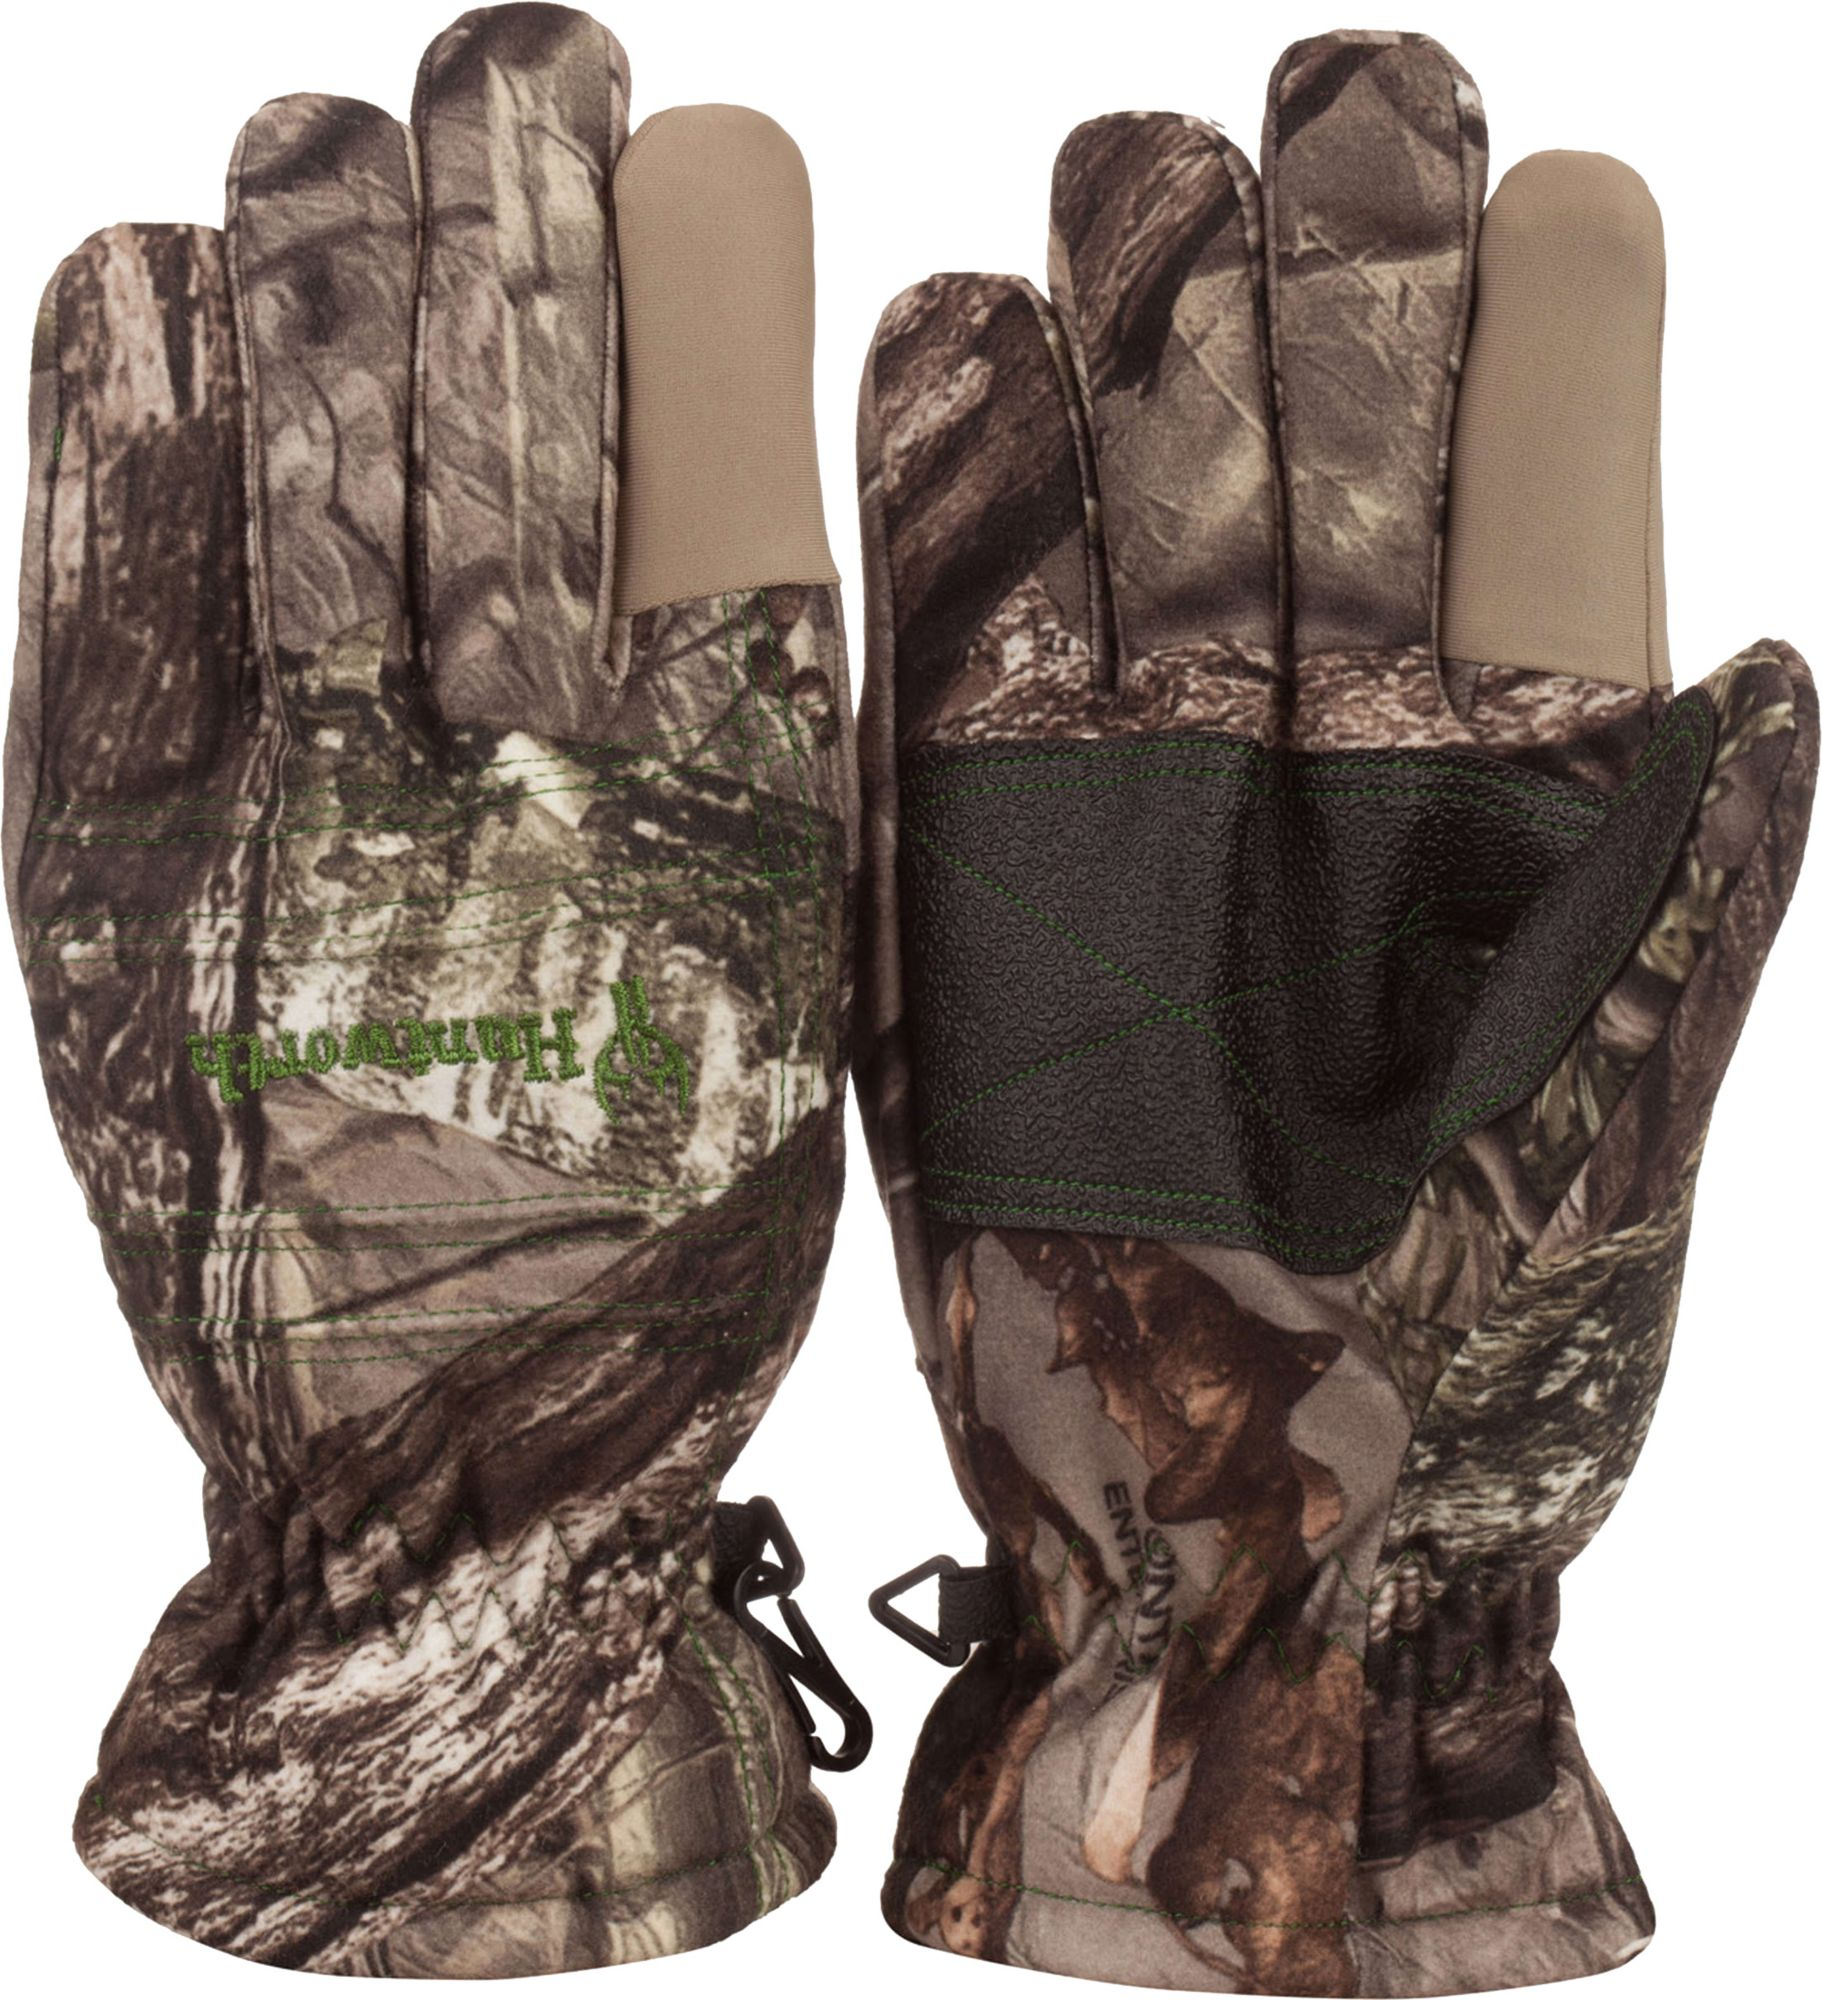 Huntworth Youth Stealth Hunting Gloves, Kids Unisex, Size: Small, Brown